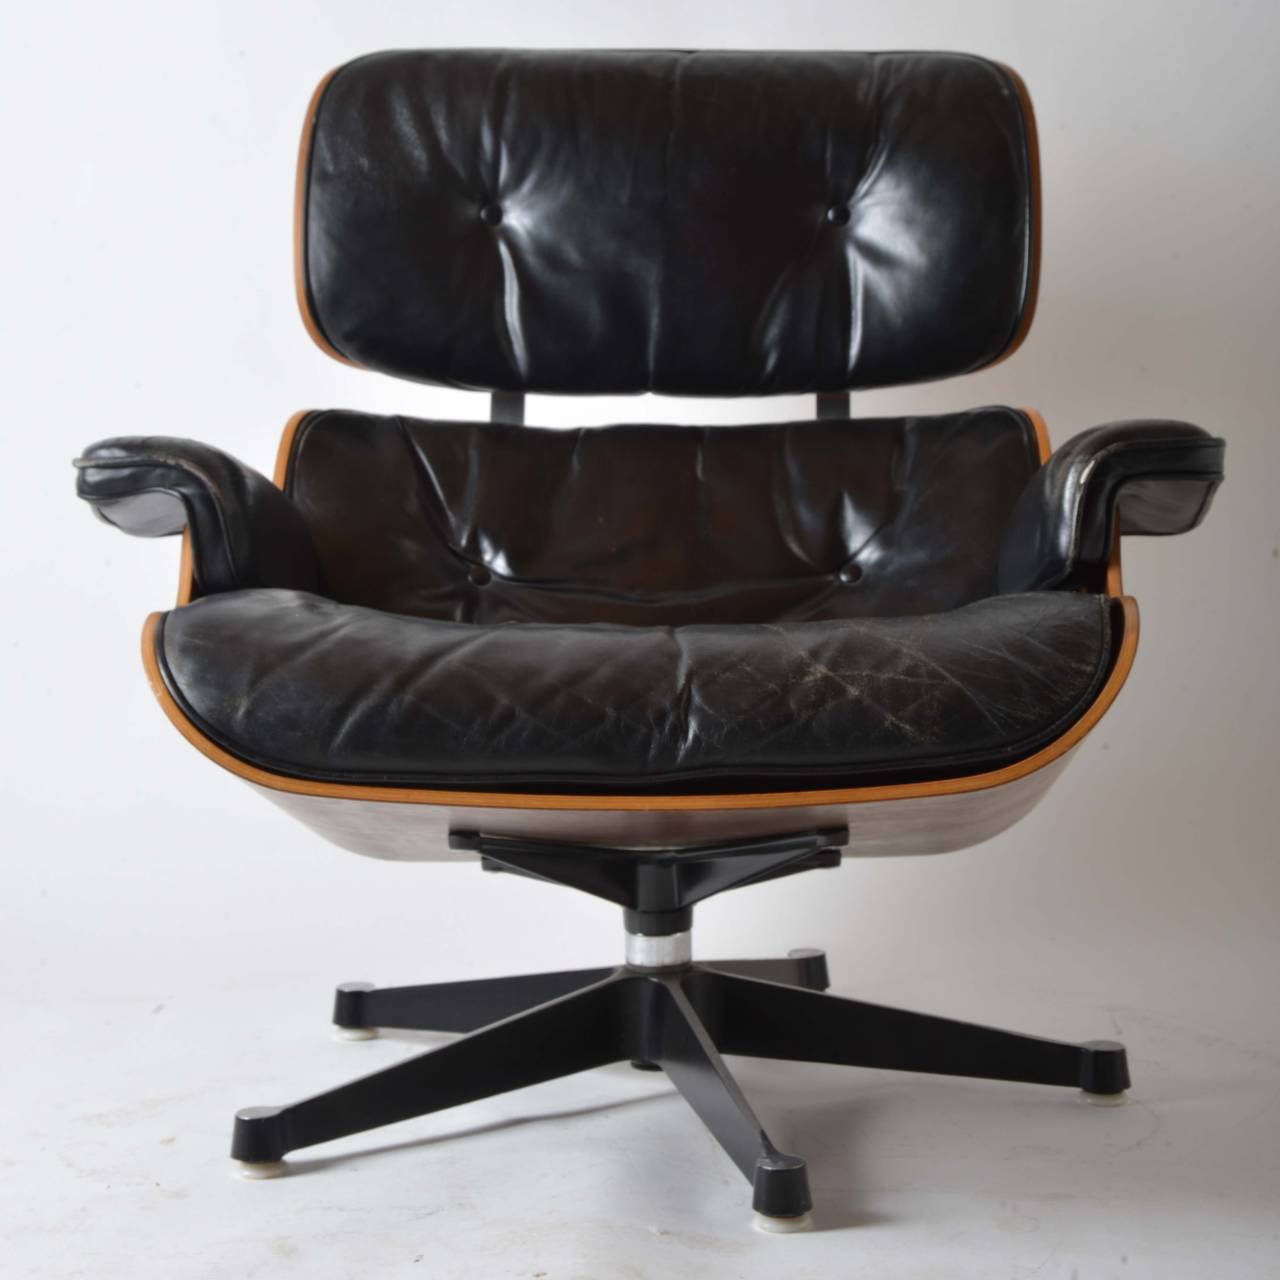 Iconic eames lounge chair for herman miller for sale at Iconic eames chair